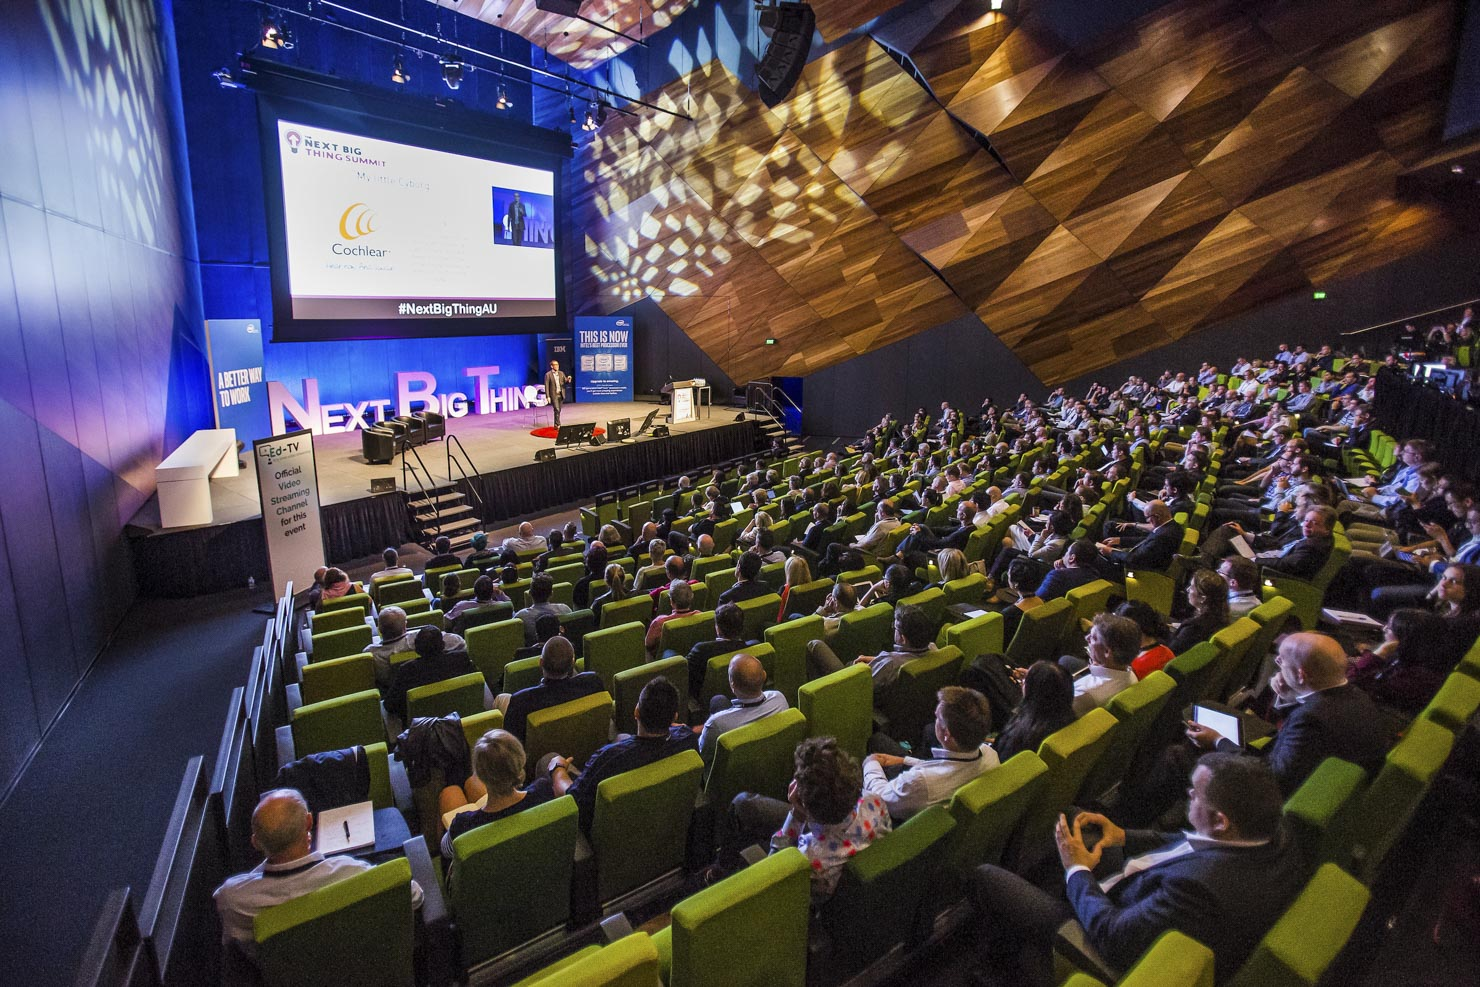 Conference photography at Melbourne Exhibition Center